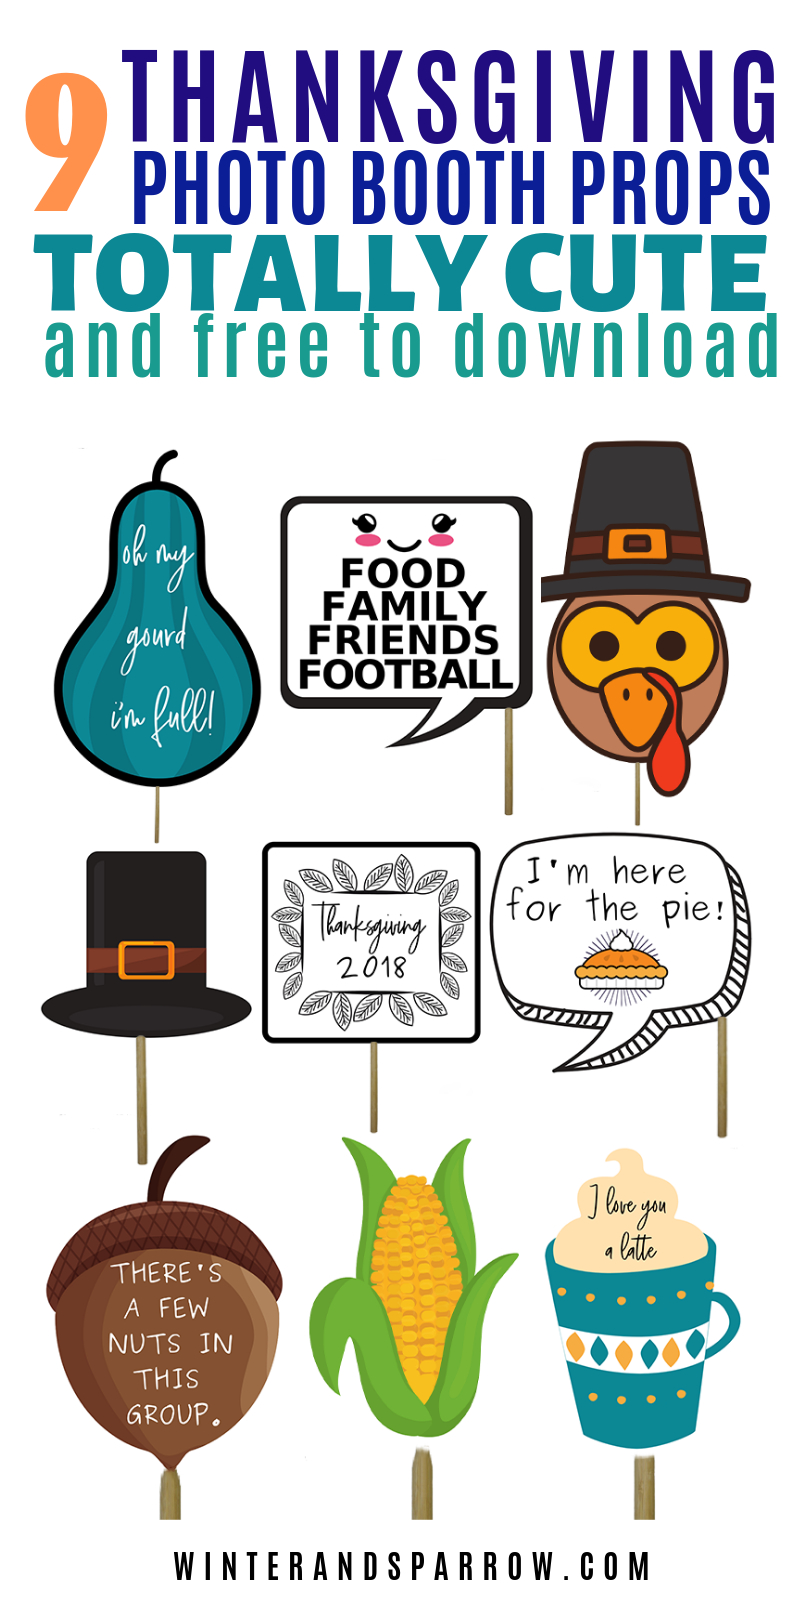 9 Totally Cute Thanksgiving Photo Booth Props (Free Download - Free Printable Thanksgiving Photo Props